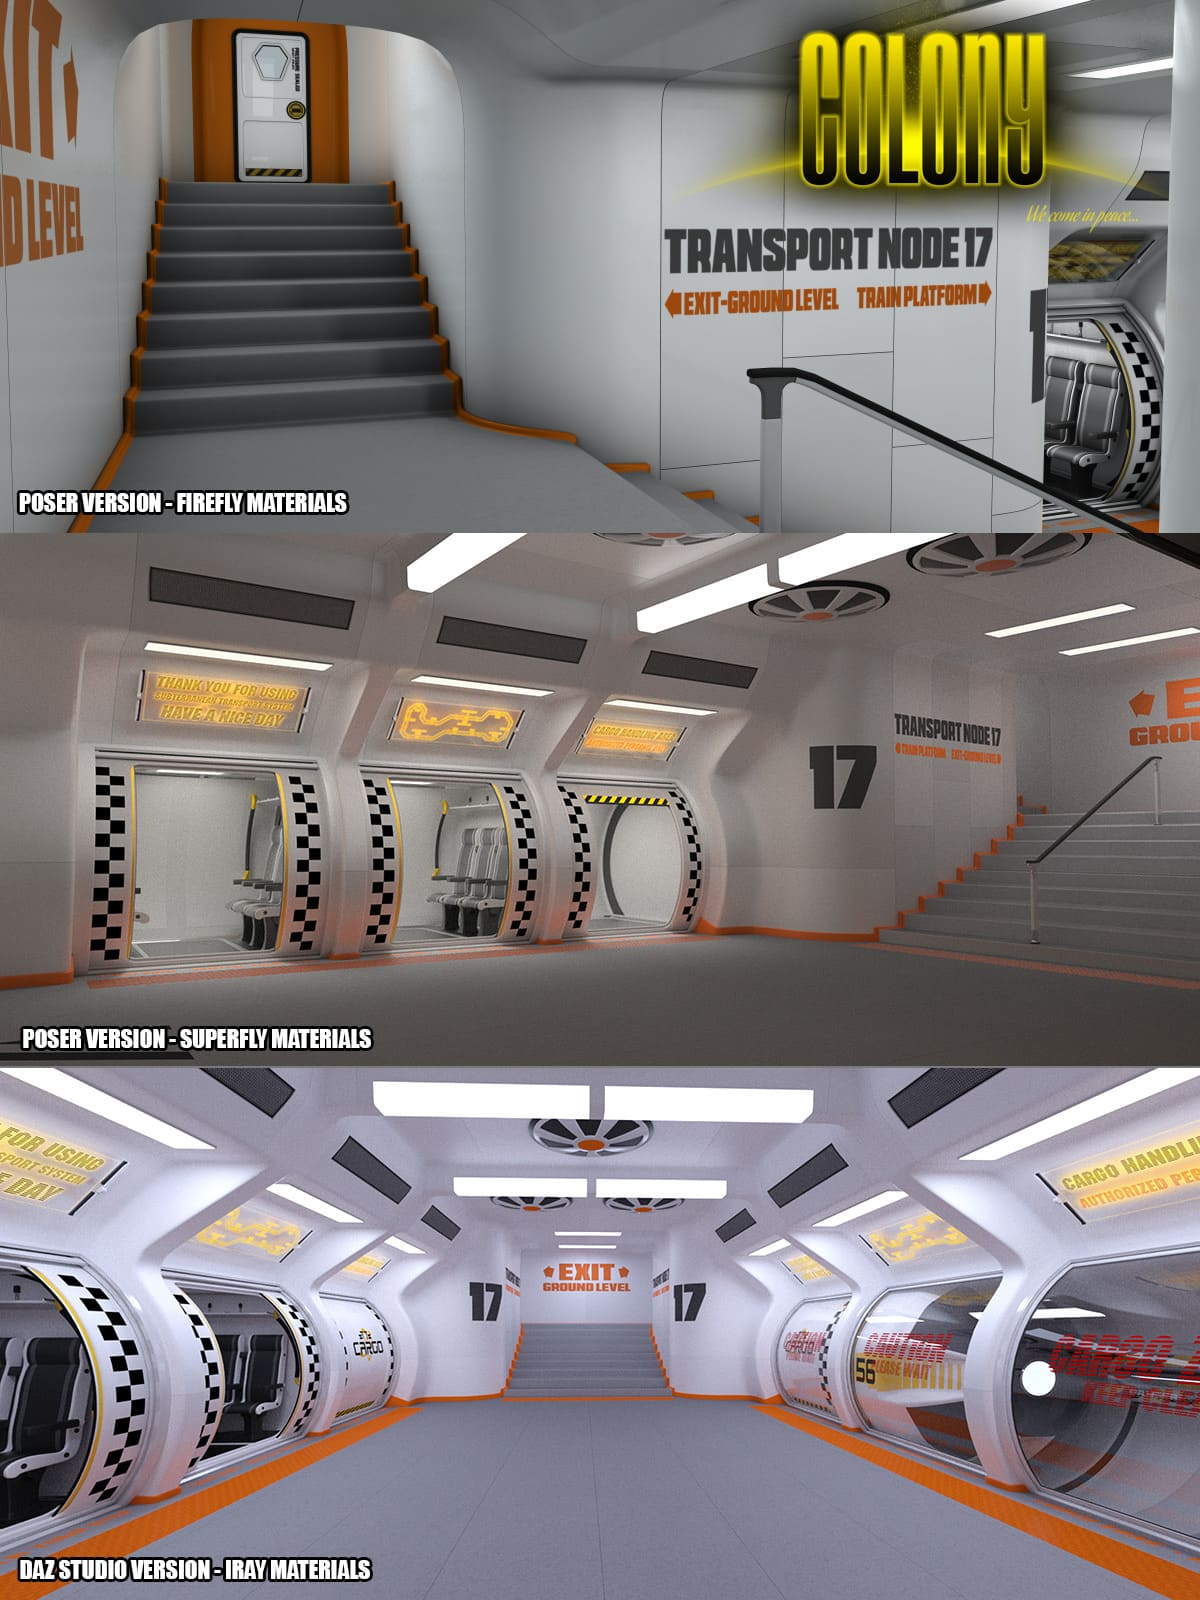 Colony Subway for Poser and DS_DAZ3D下载站